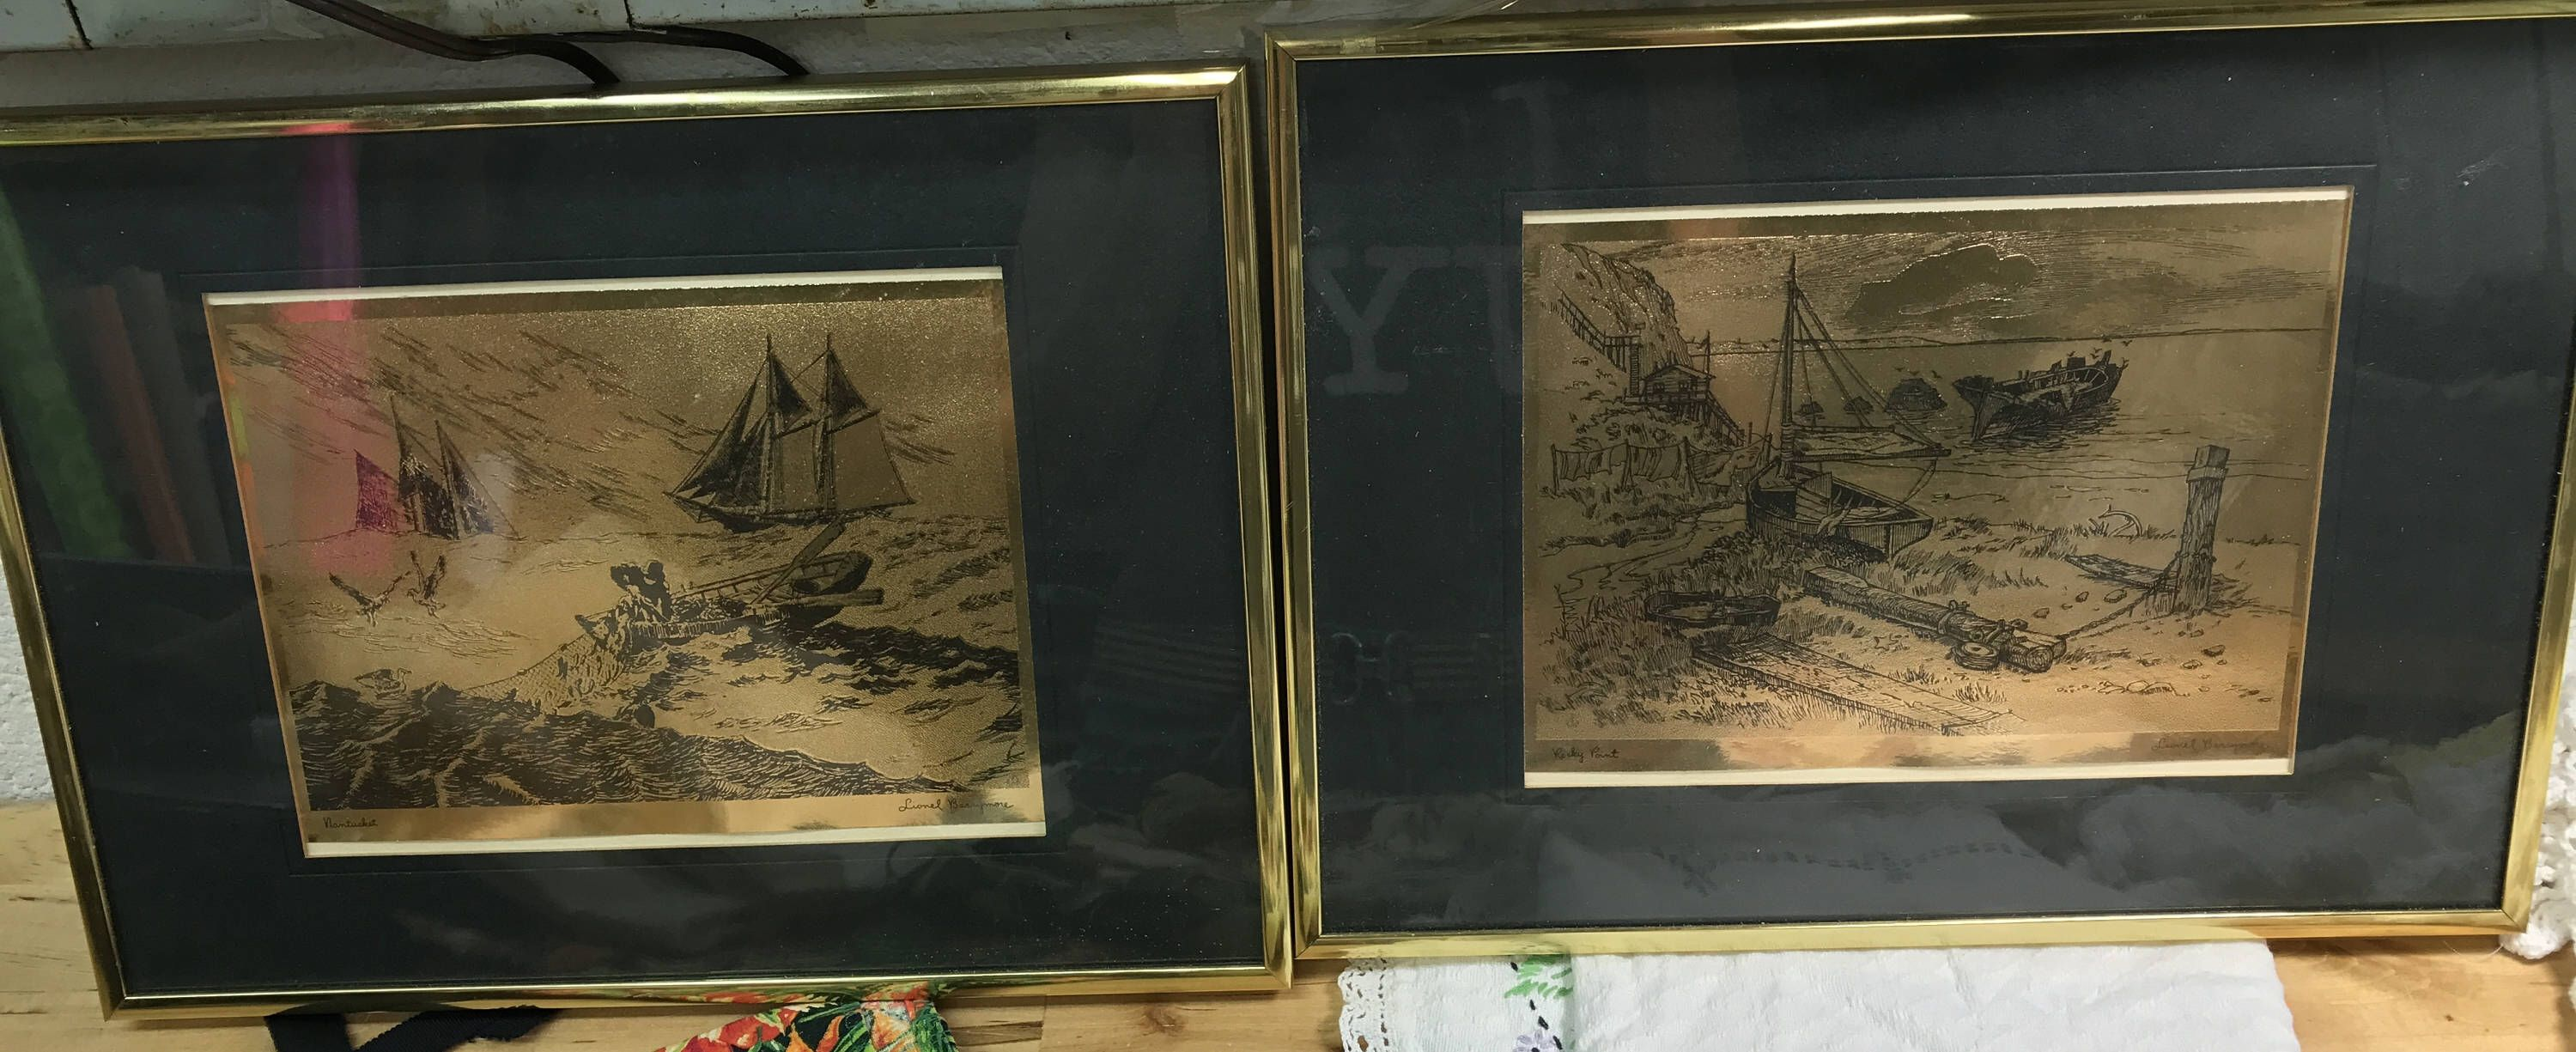 Gold foil etchings lionel barrymore art rocky point